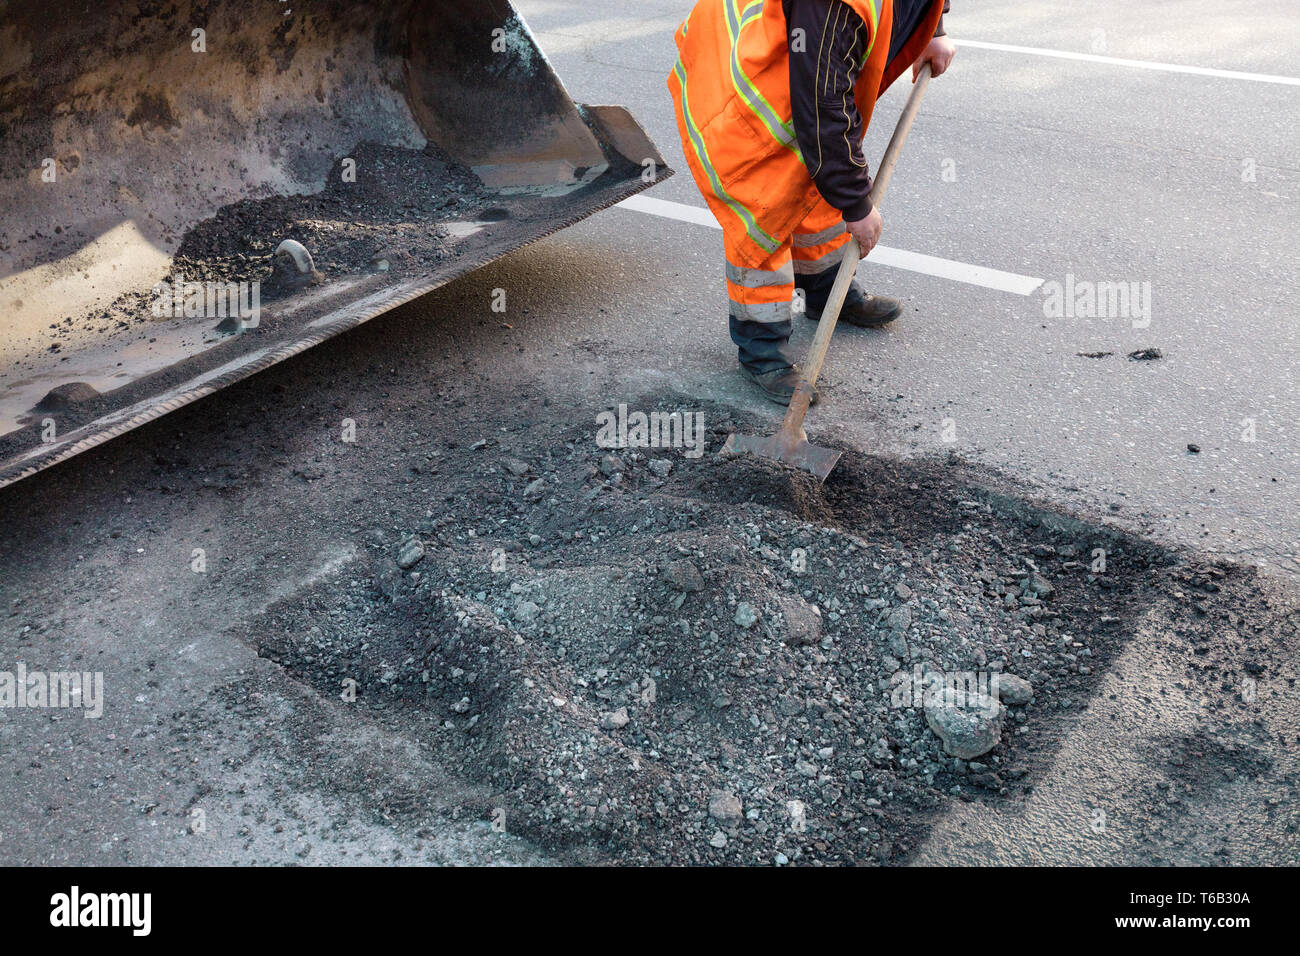 the road maintenance worker throws the old asphalt into the excavator's bogie in road construction - Stock Image